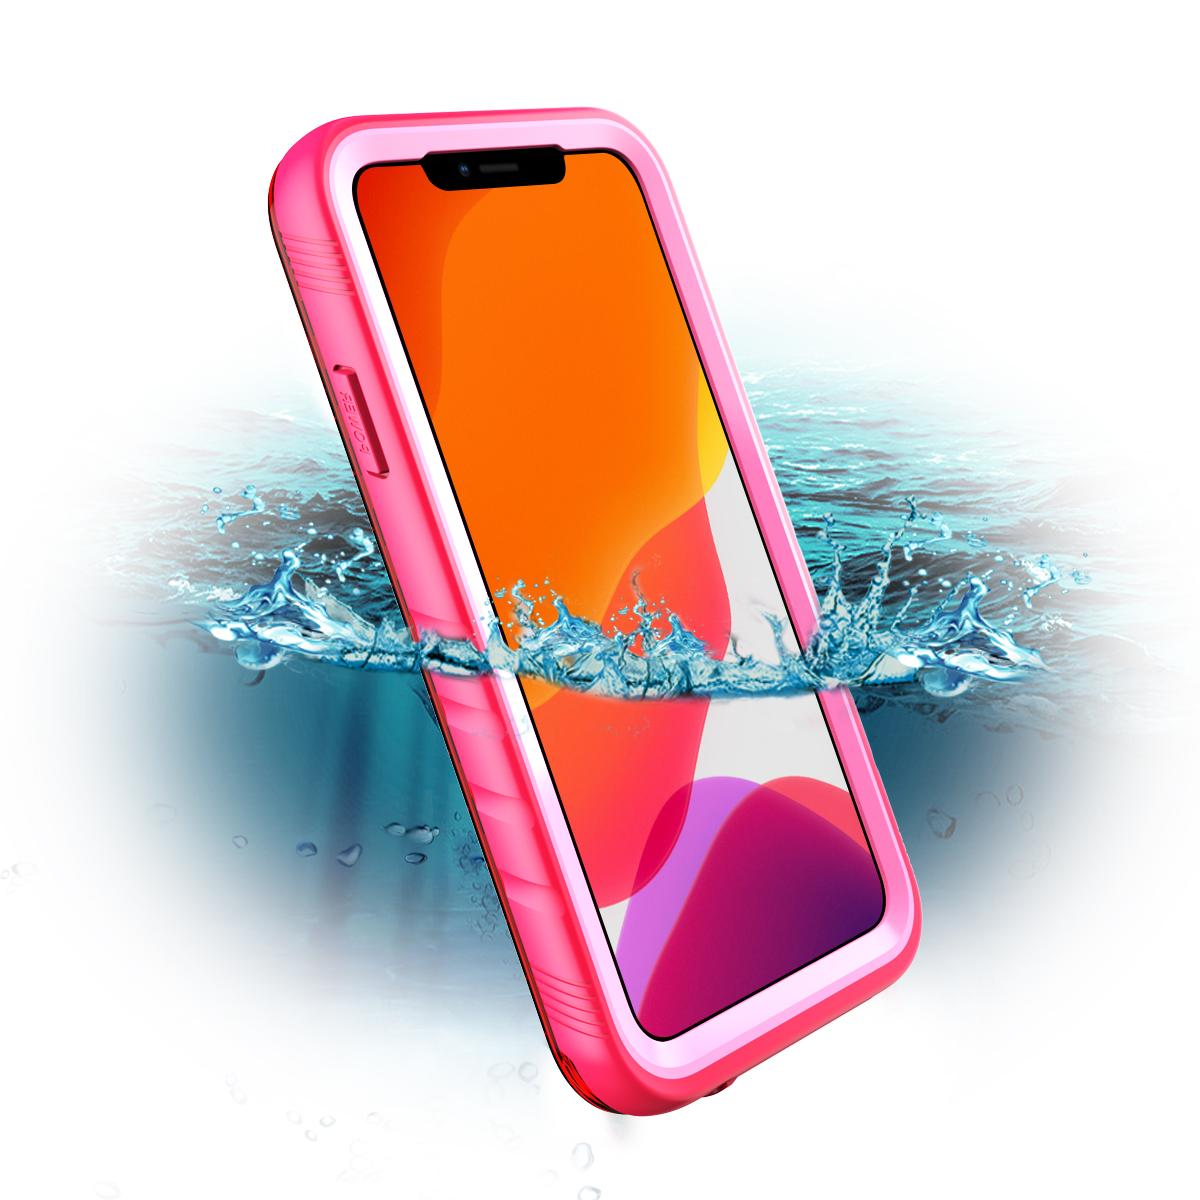 apple iphone 11 pro max waterproof